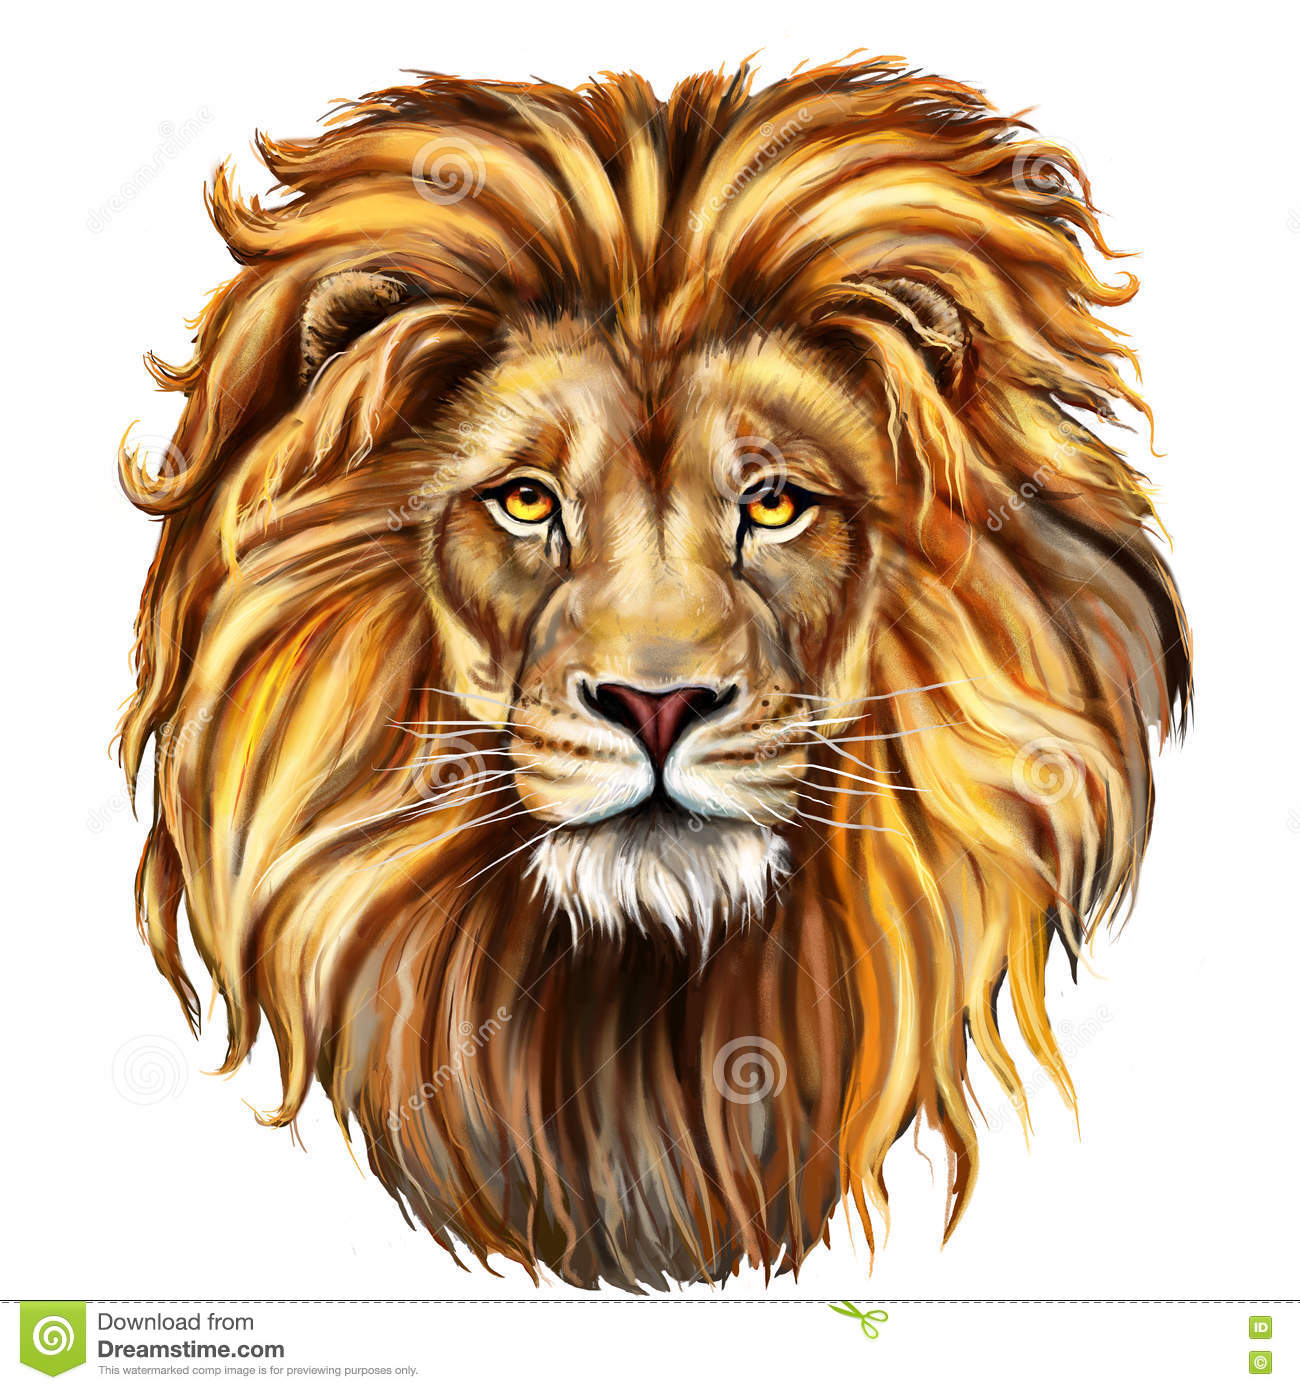 Lion Stock Illustrations 84 455 Lion Stock Illustrations Vectors Clipart Dreamstime Illustration of abstract red lion, animal and painted its. dreamstime com